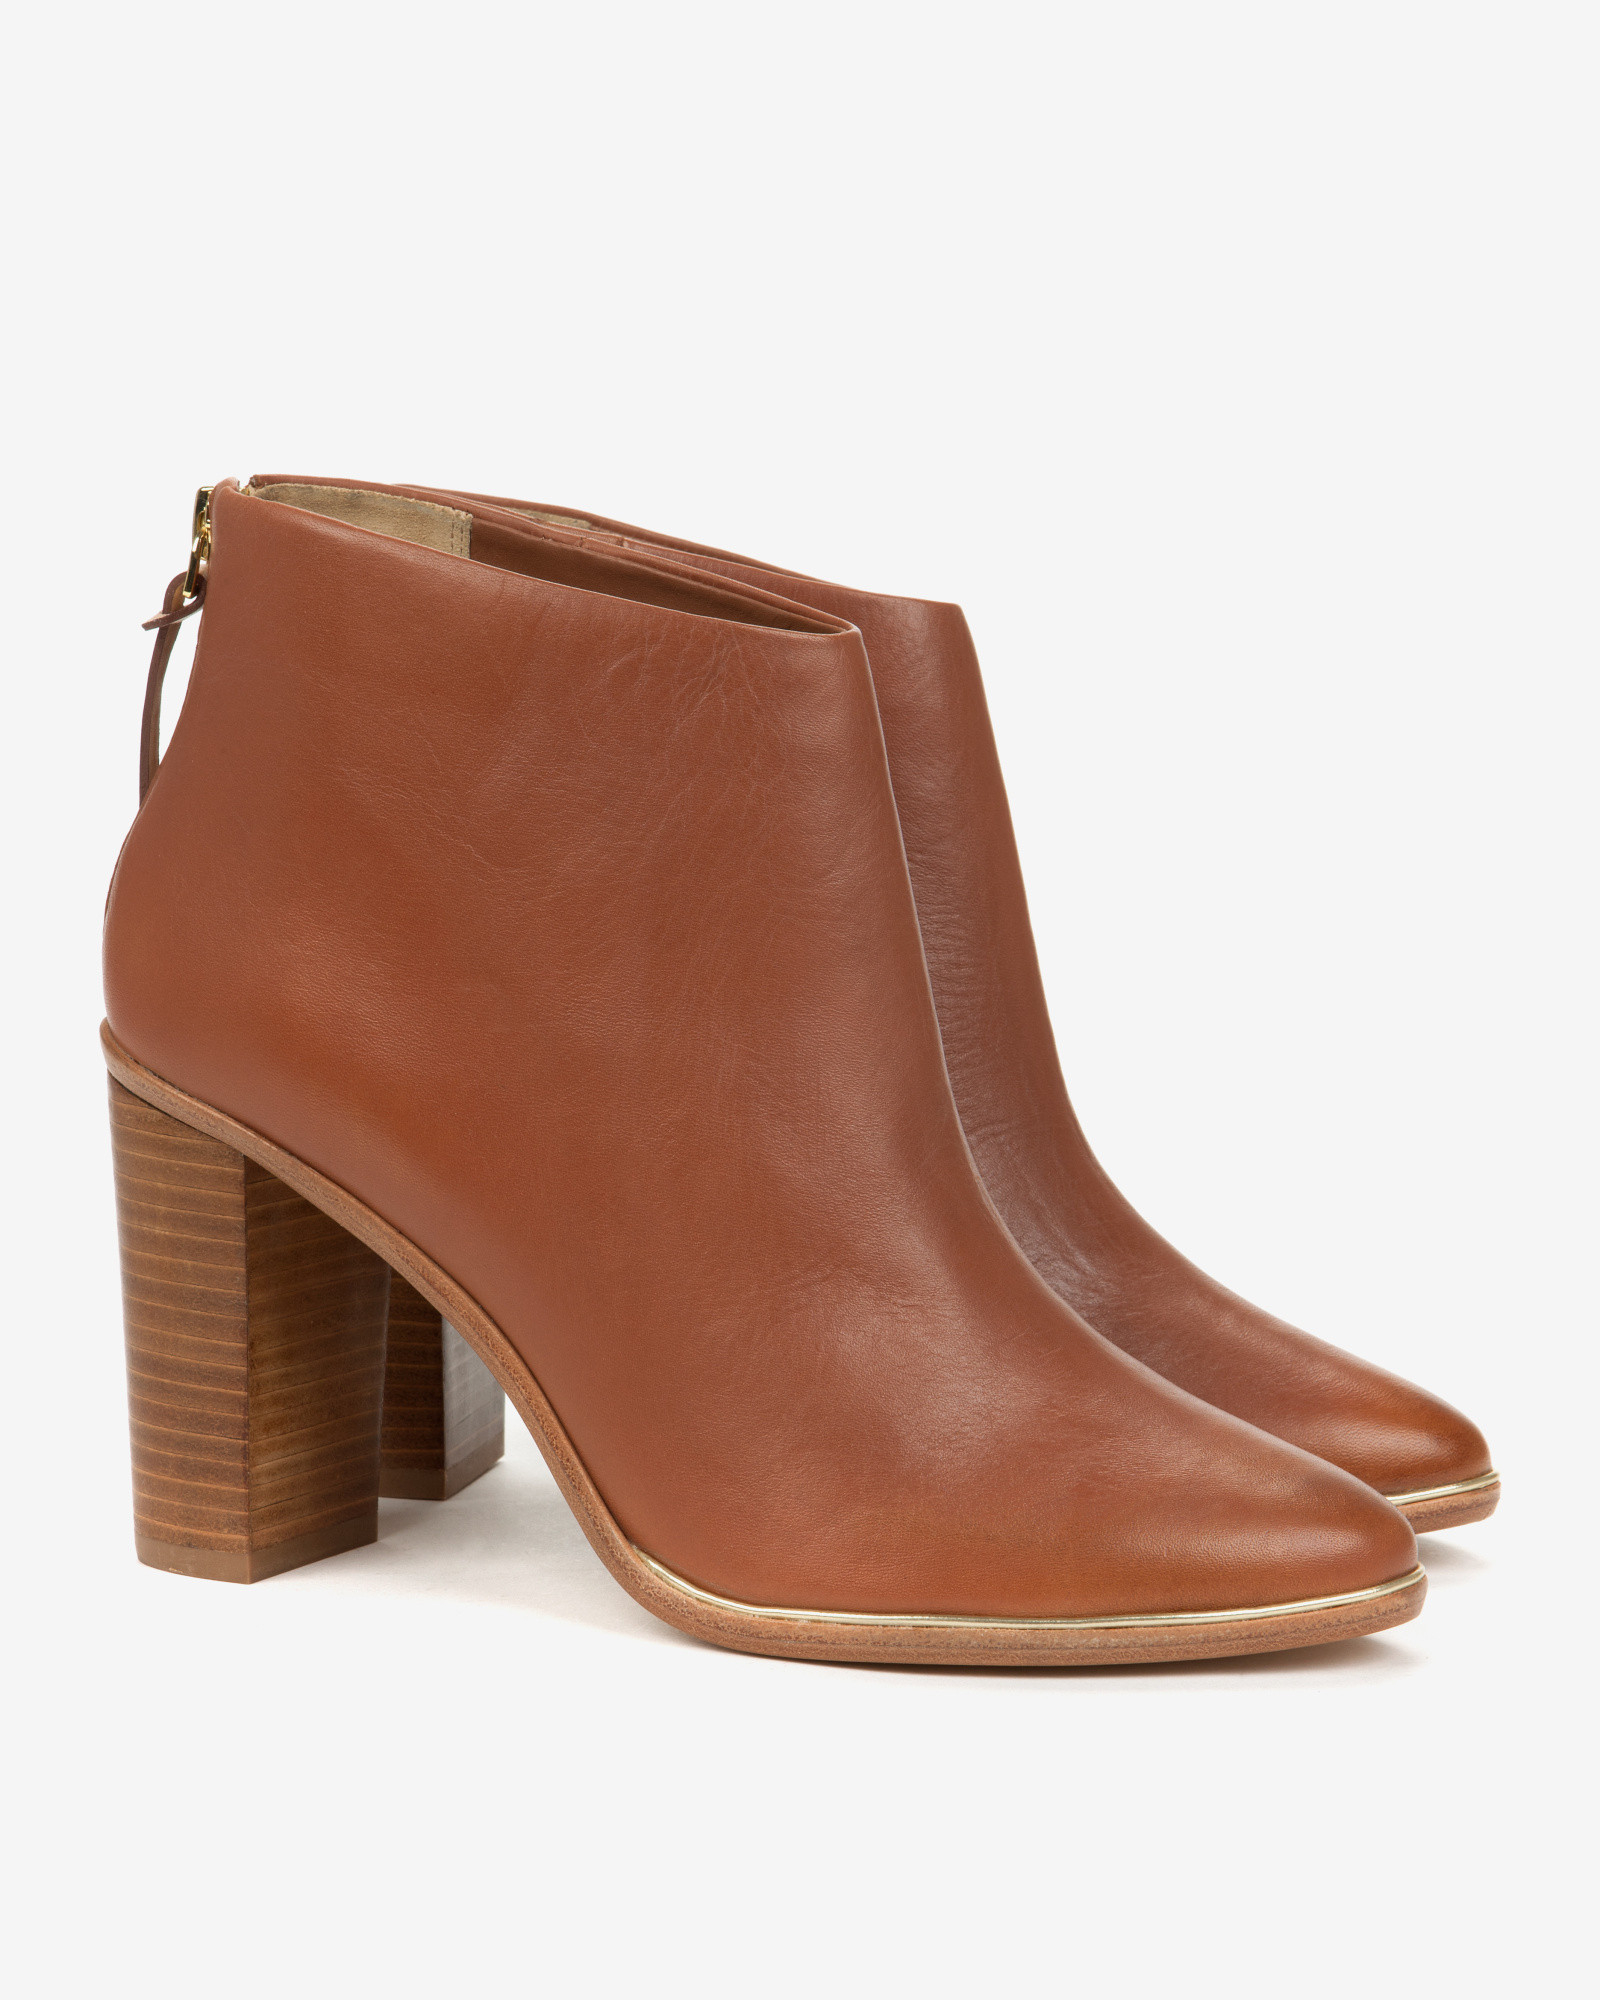 Lyst - Ted Baker Leather Ankle Boots in Brown 6e4983d0cac9